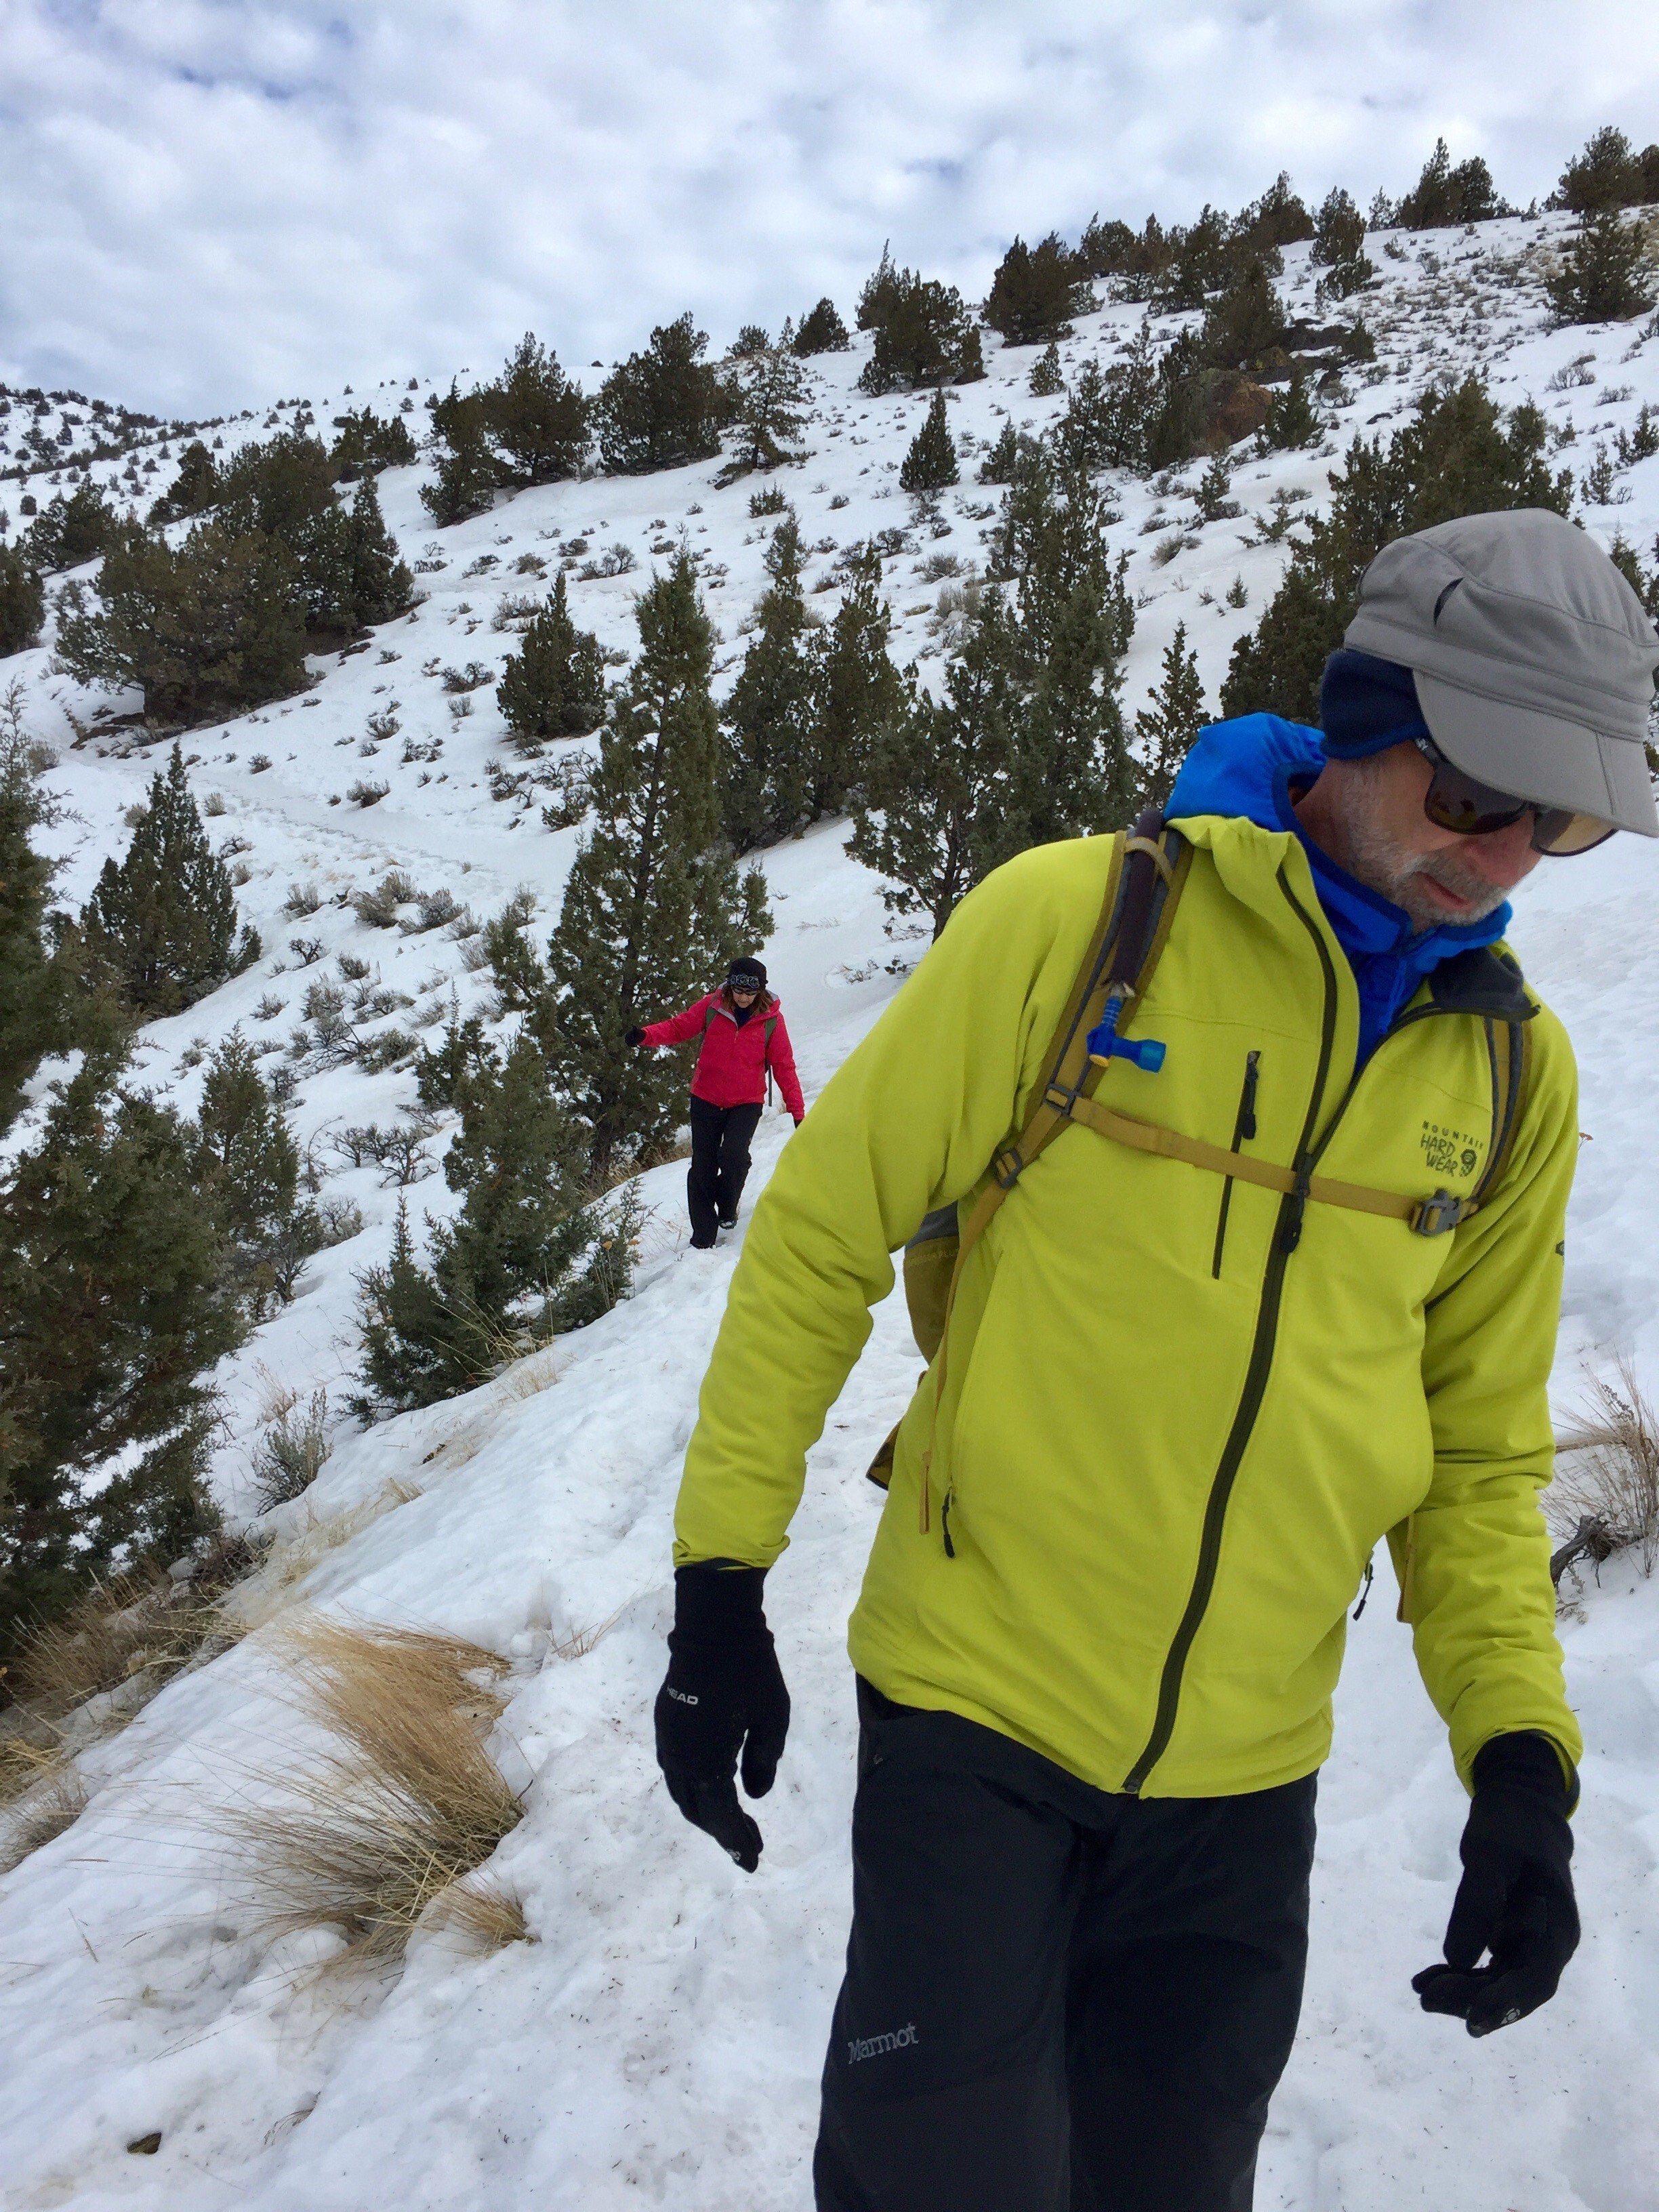 Adding a light pack with layers to adjust to weather changes along with a hydration pack is essential in the winter and summer months at Smith Rock.